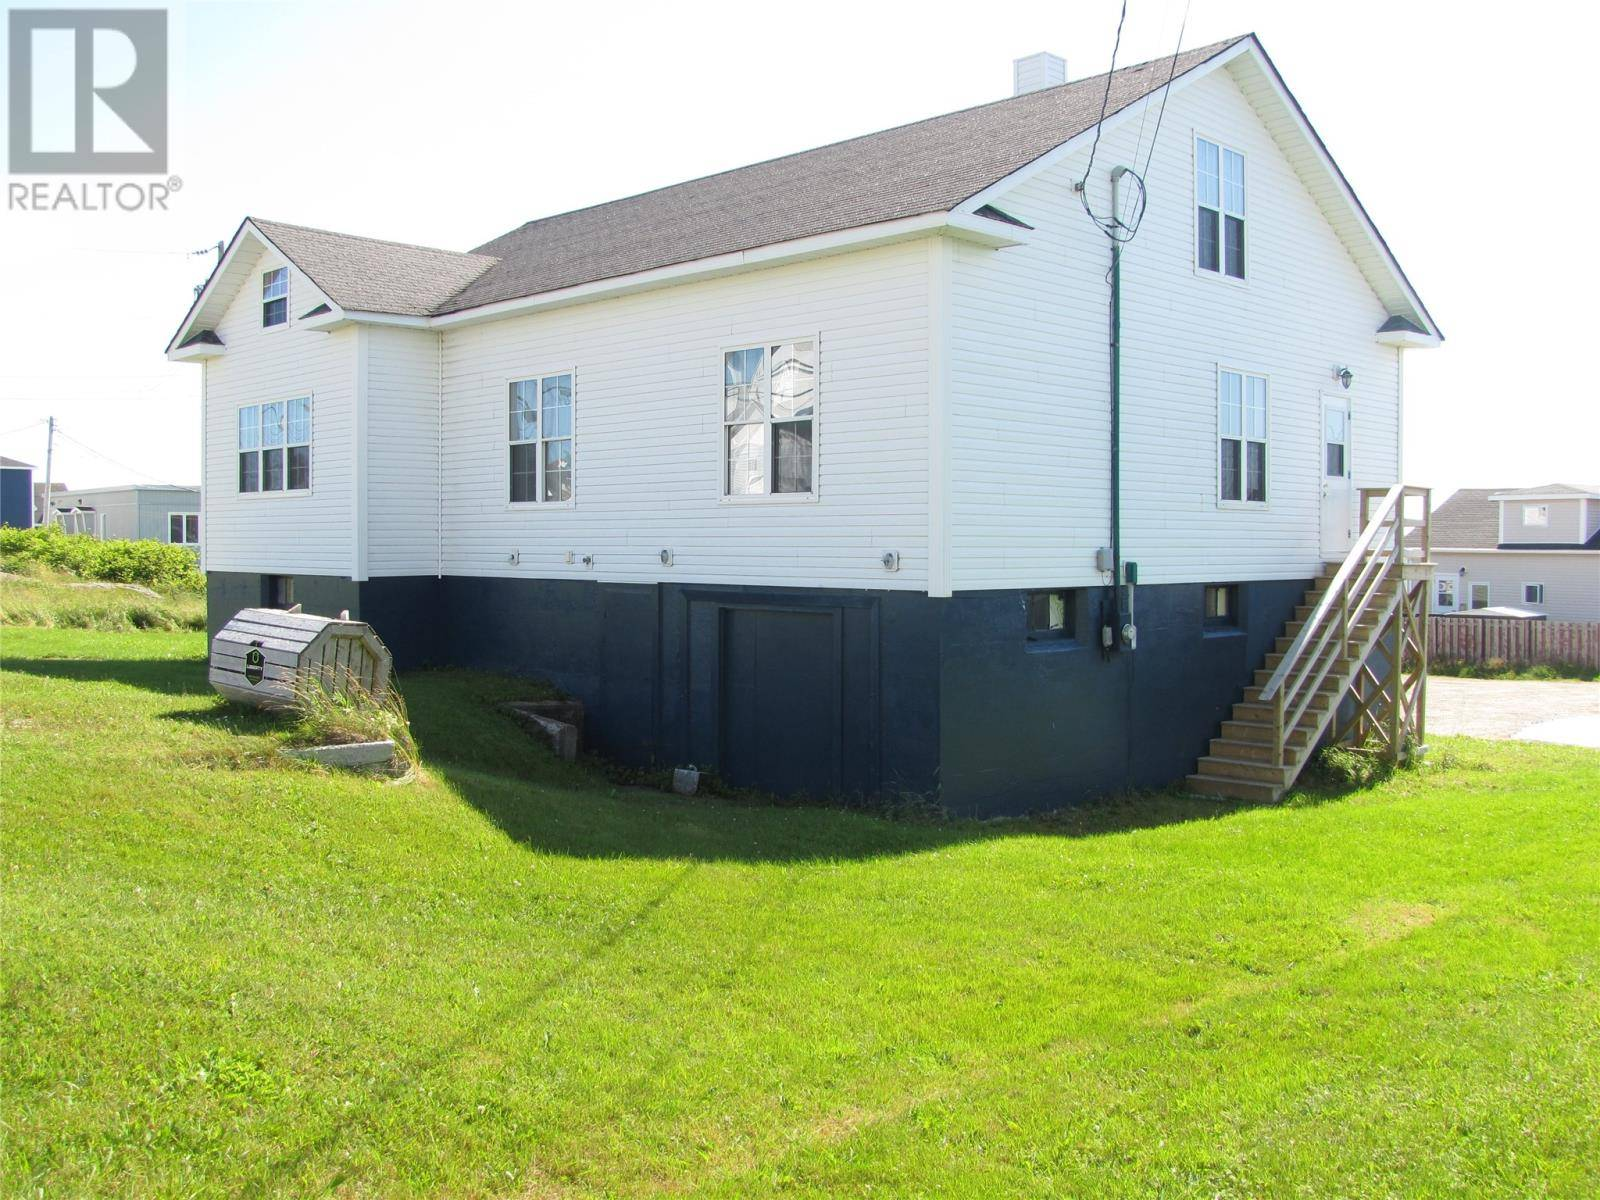 House for sale at 112 Main St Port Aux Basques Newfoundland - MLS: 1209830